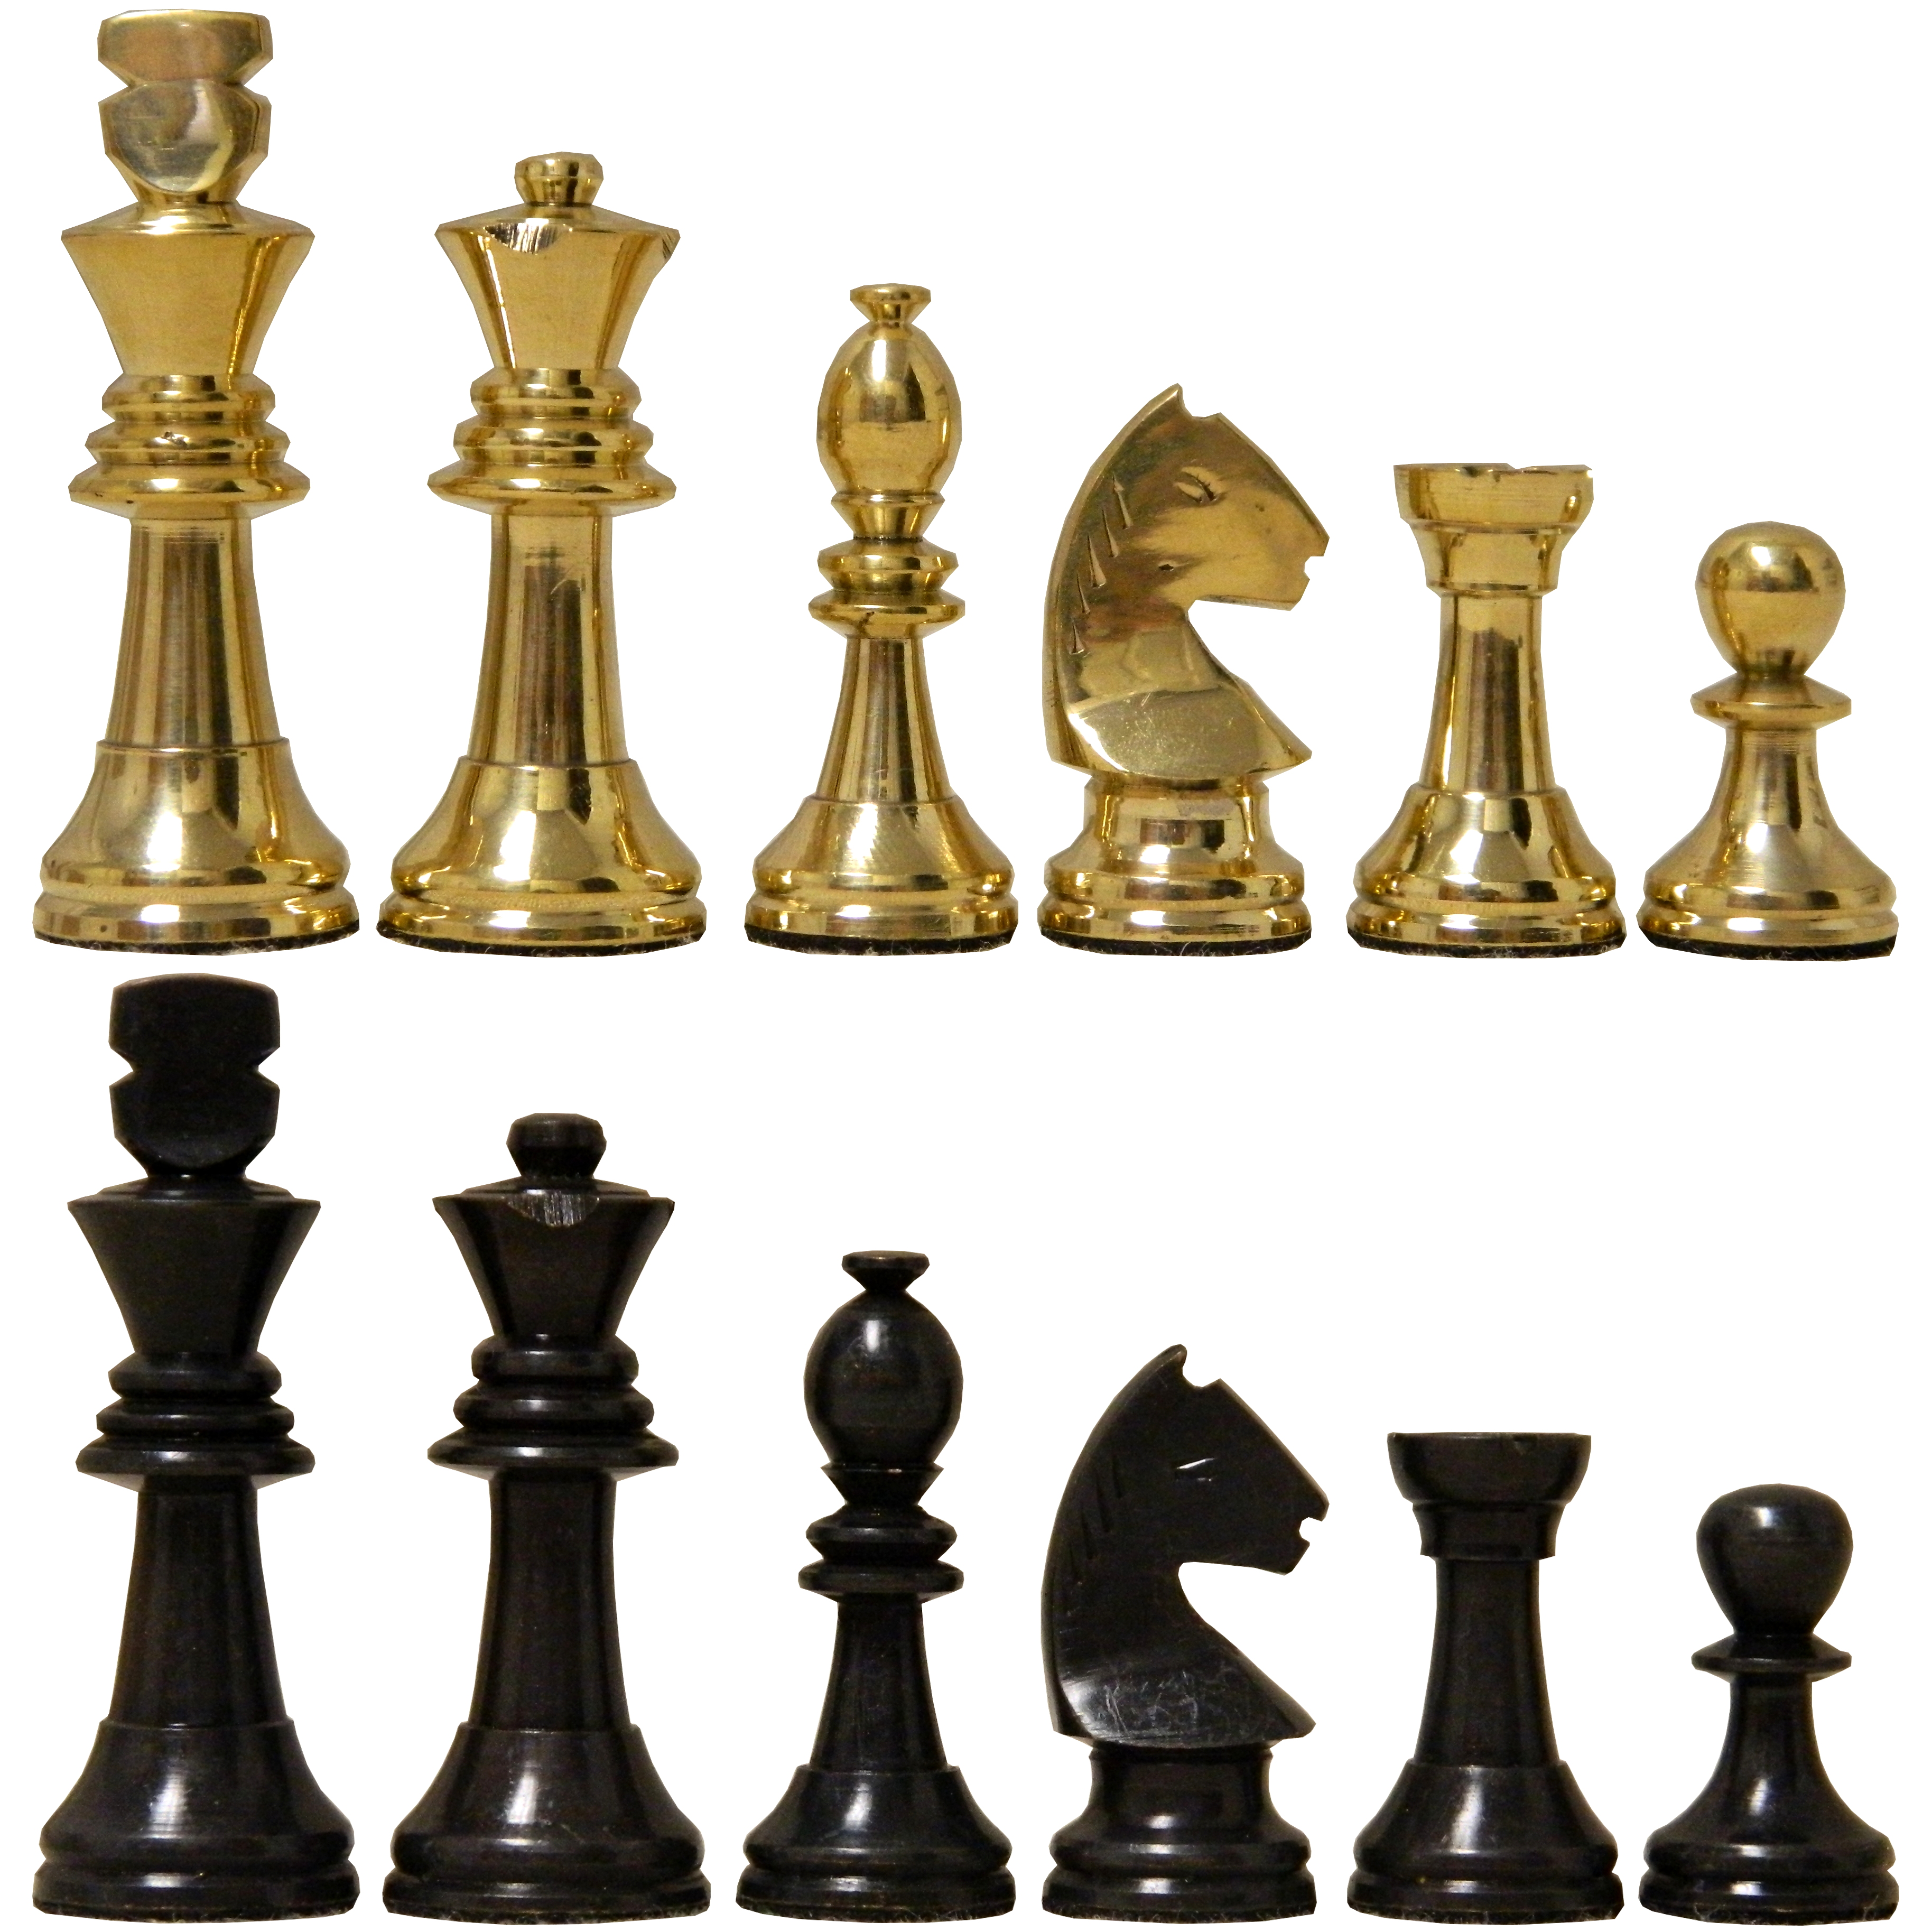 Gold Chess Pieces 2 1 2